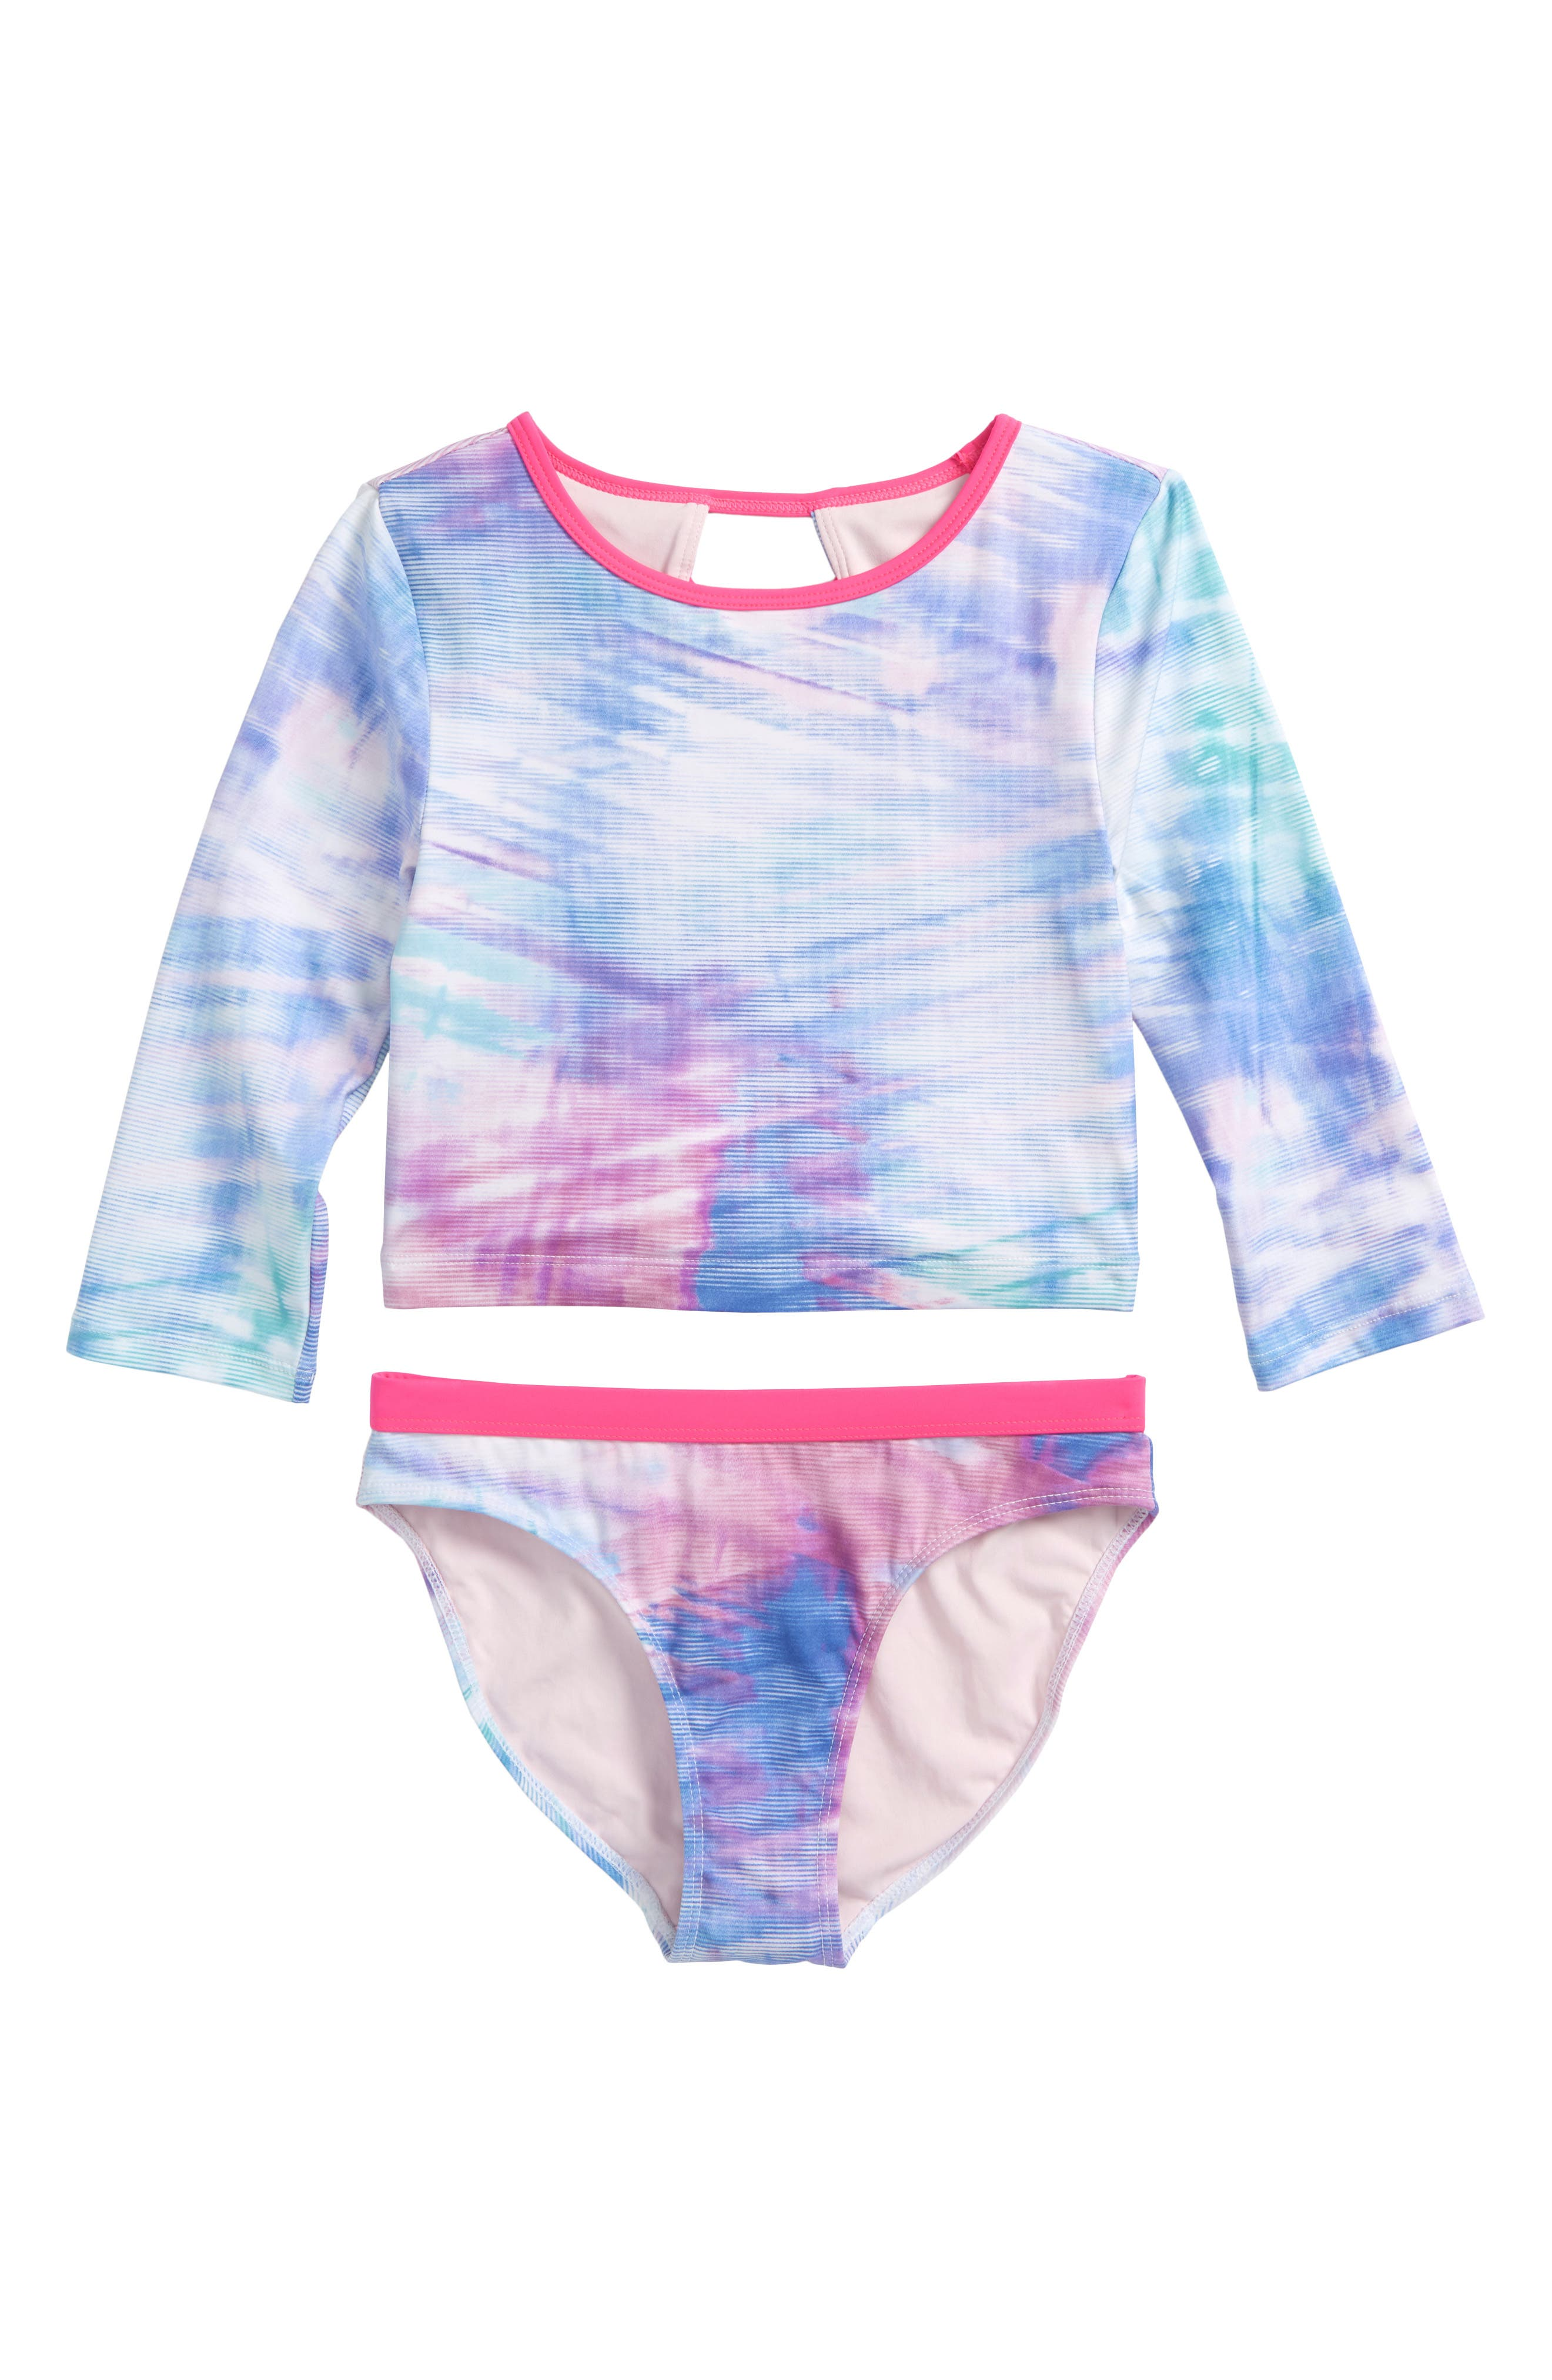 Scoop Two-Piece Rashguard Swimsuit,                             Main thumbnail 1, color,                             Pink Neon Striped Wash